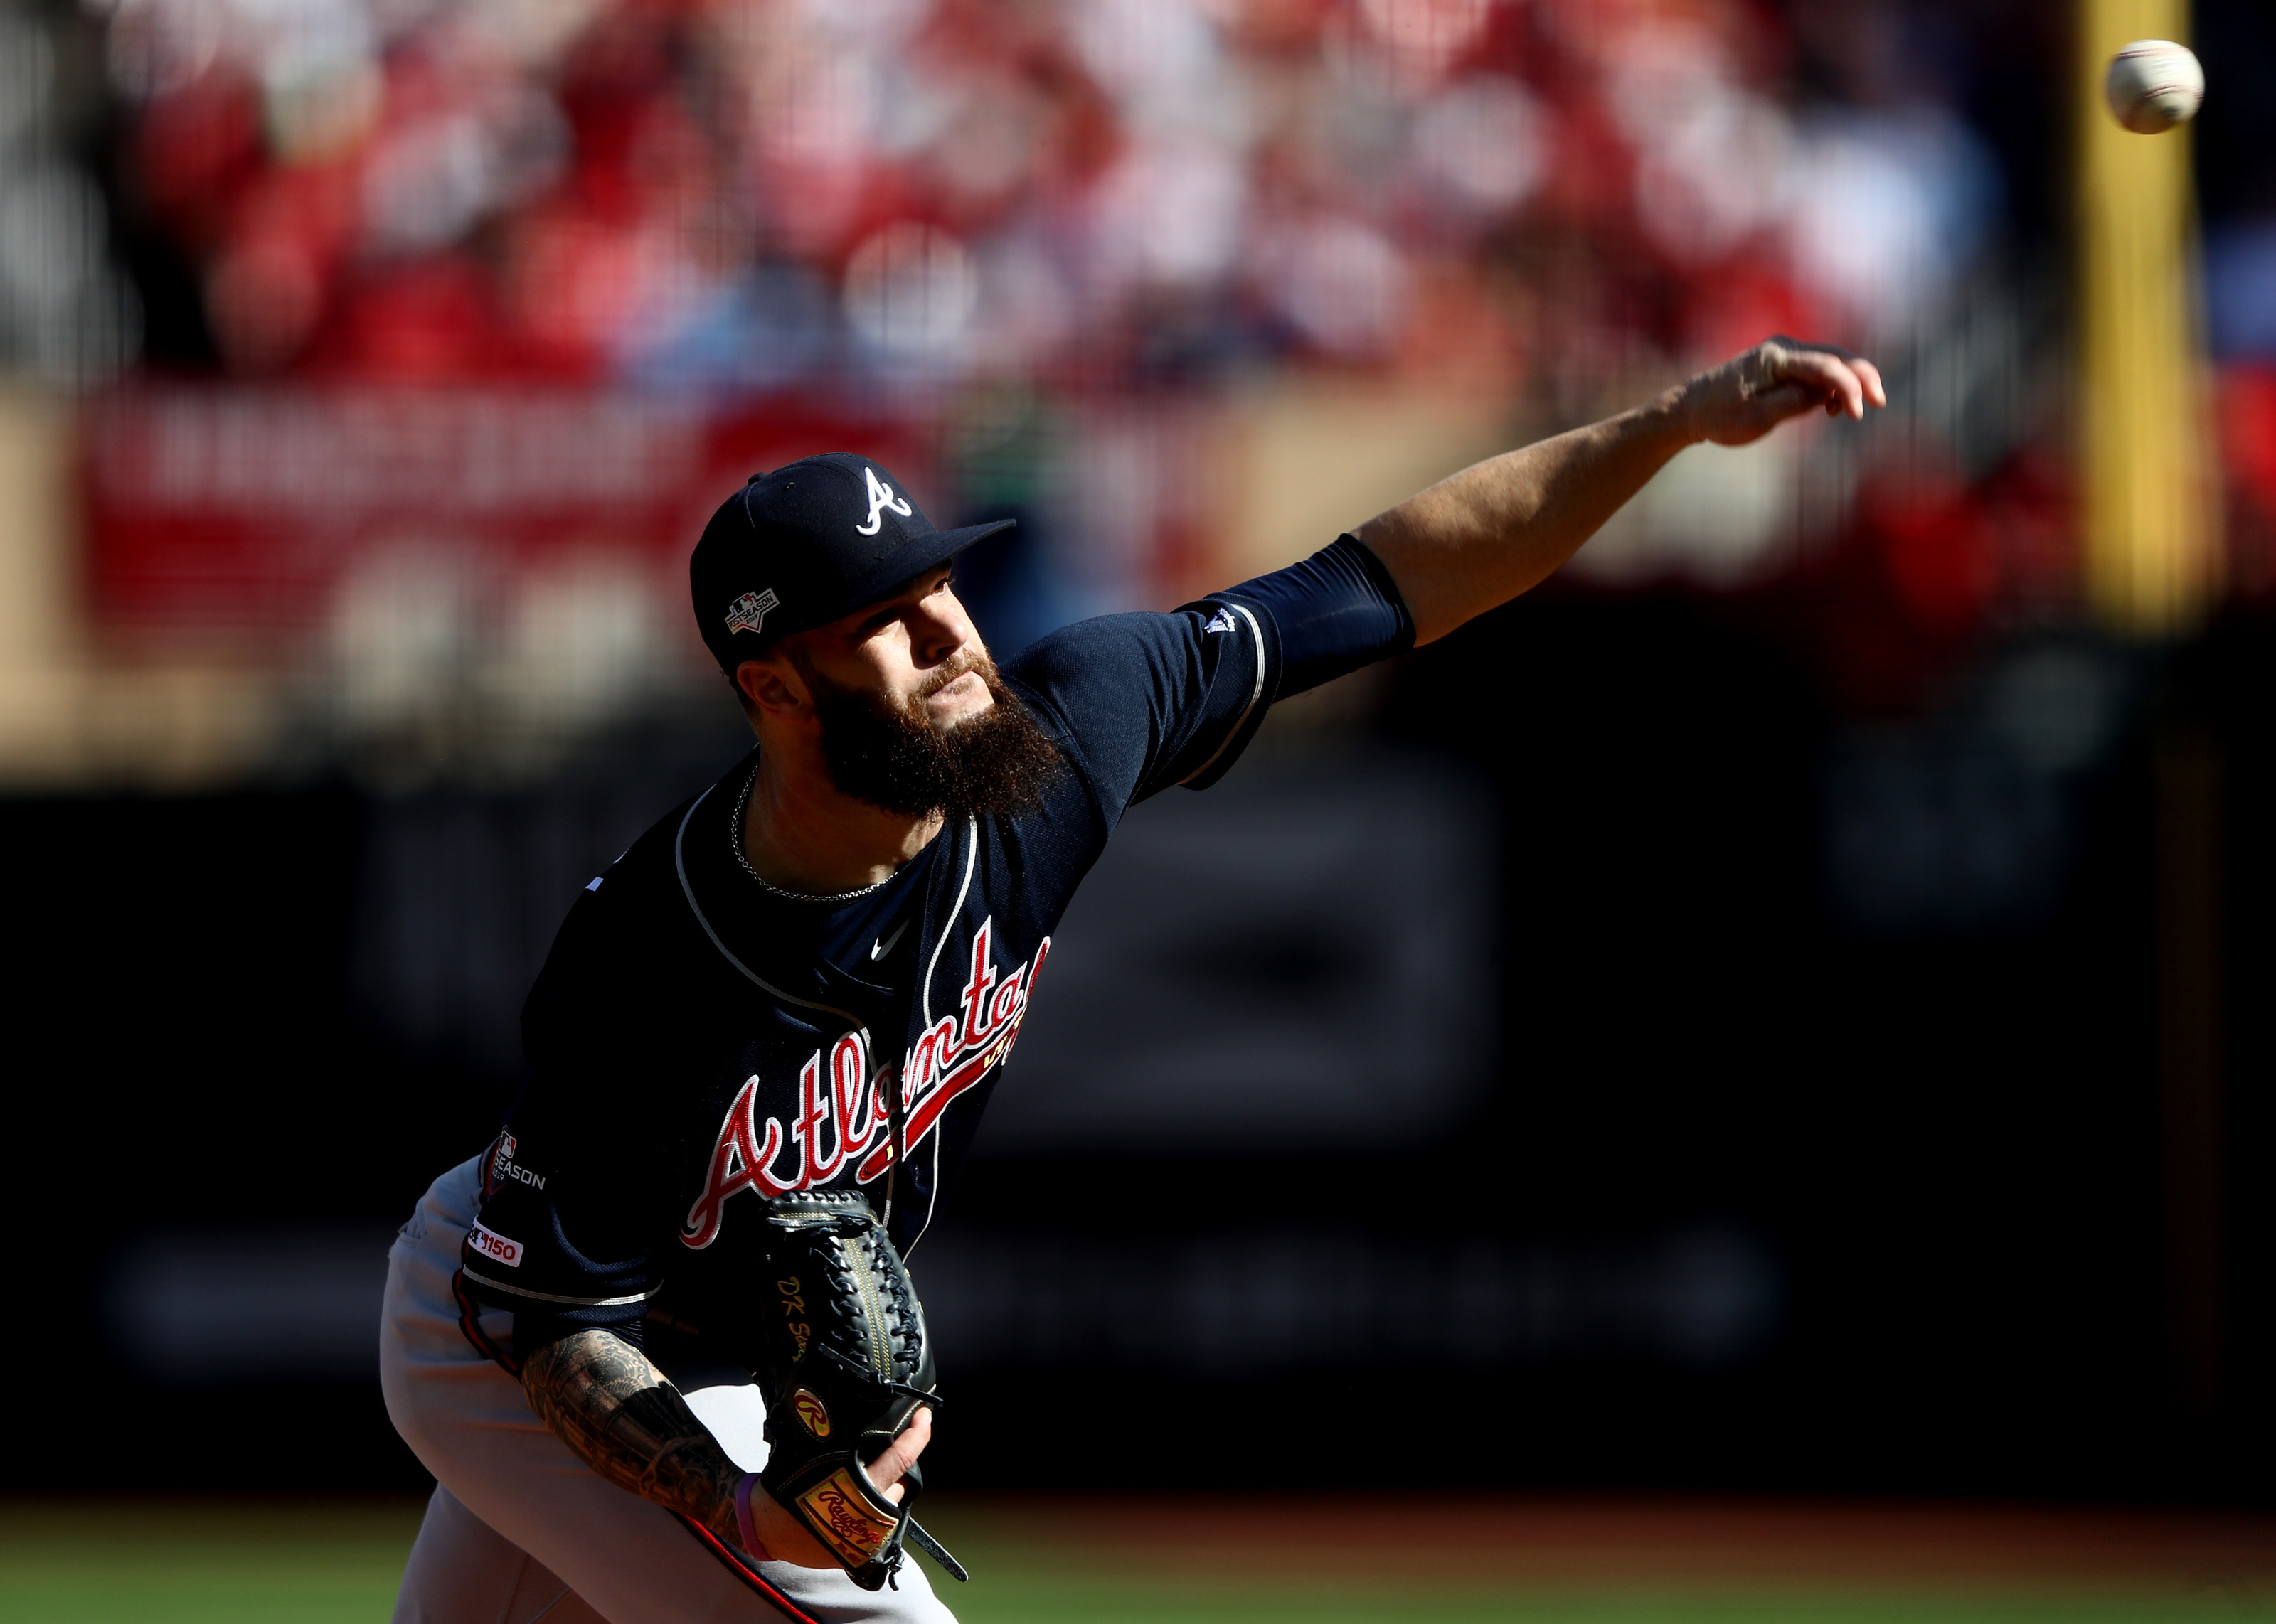 Astros Dallas Keuchel May Be The Best Free Agent Option Left